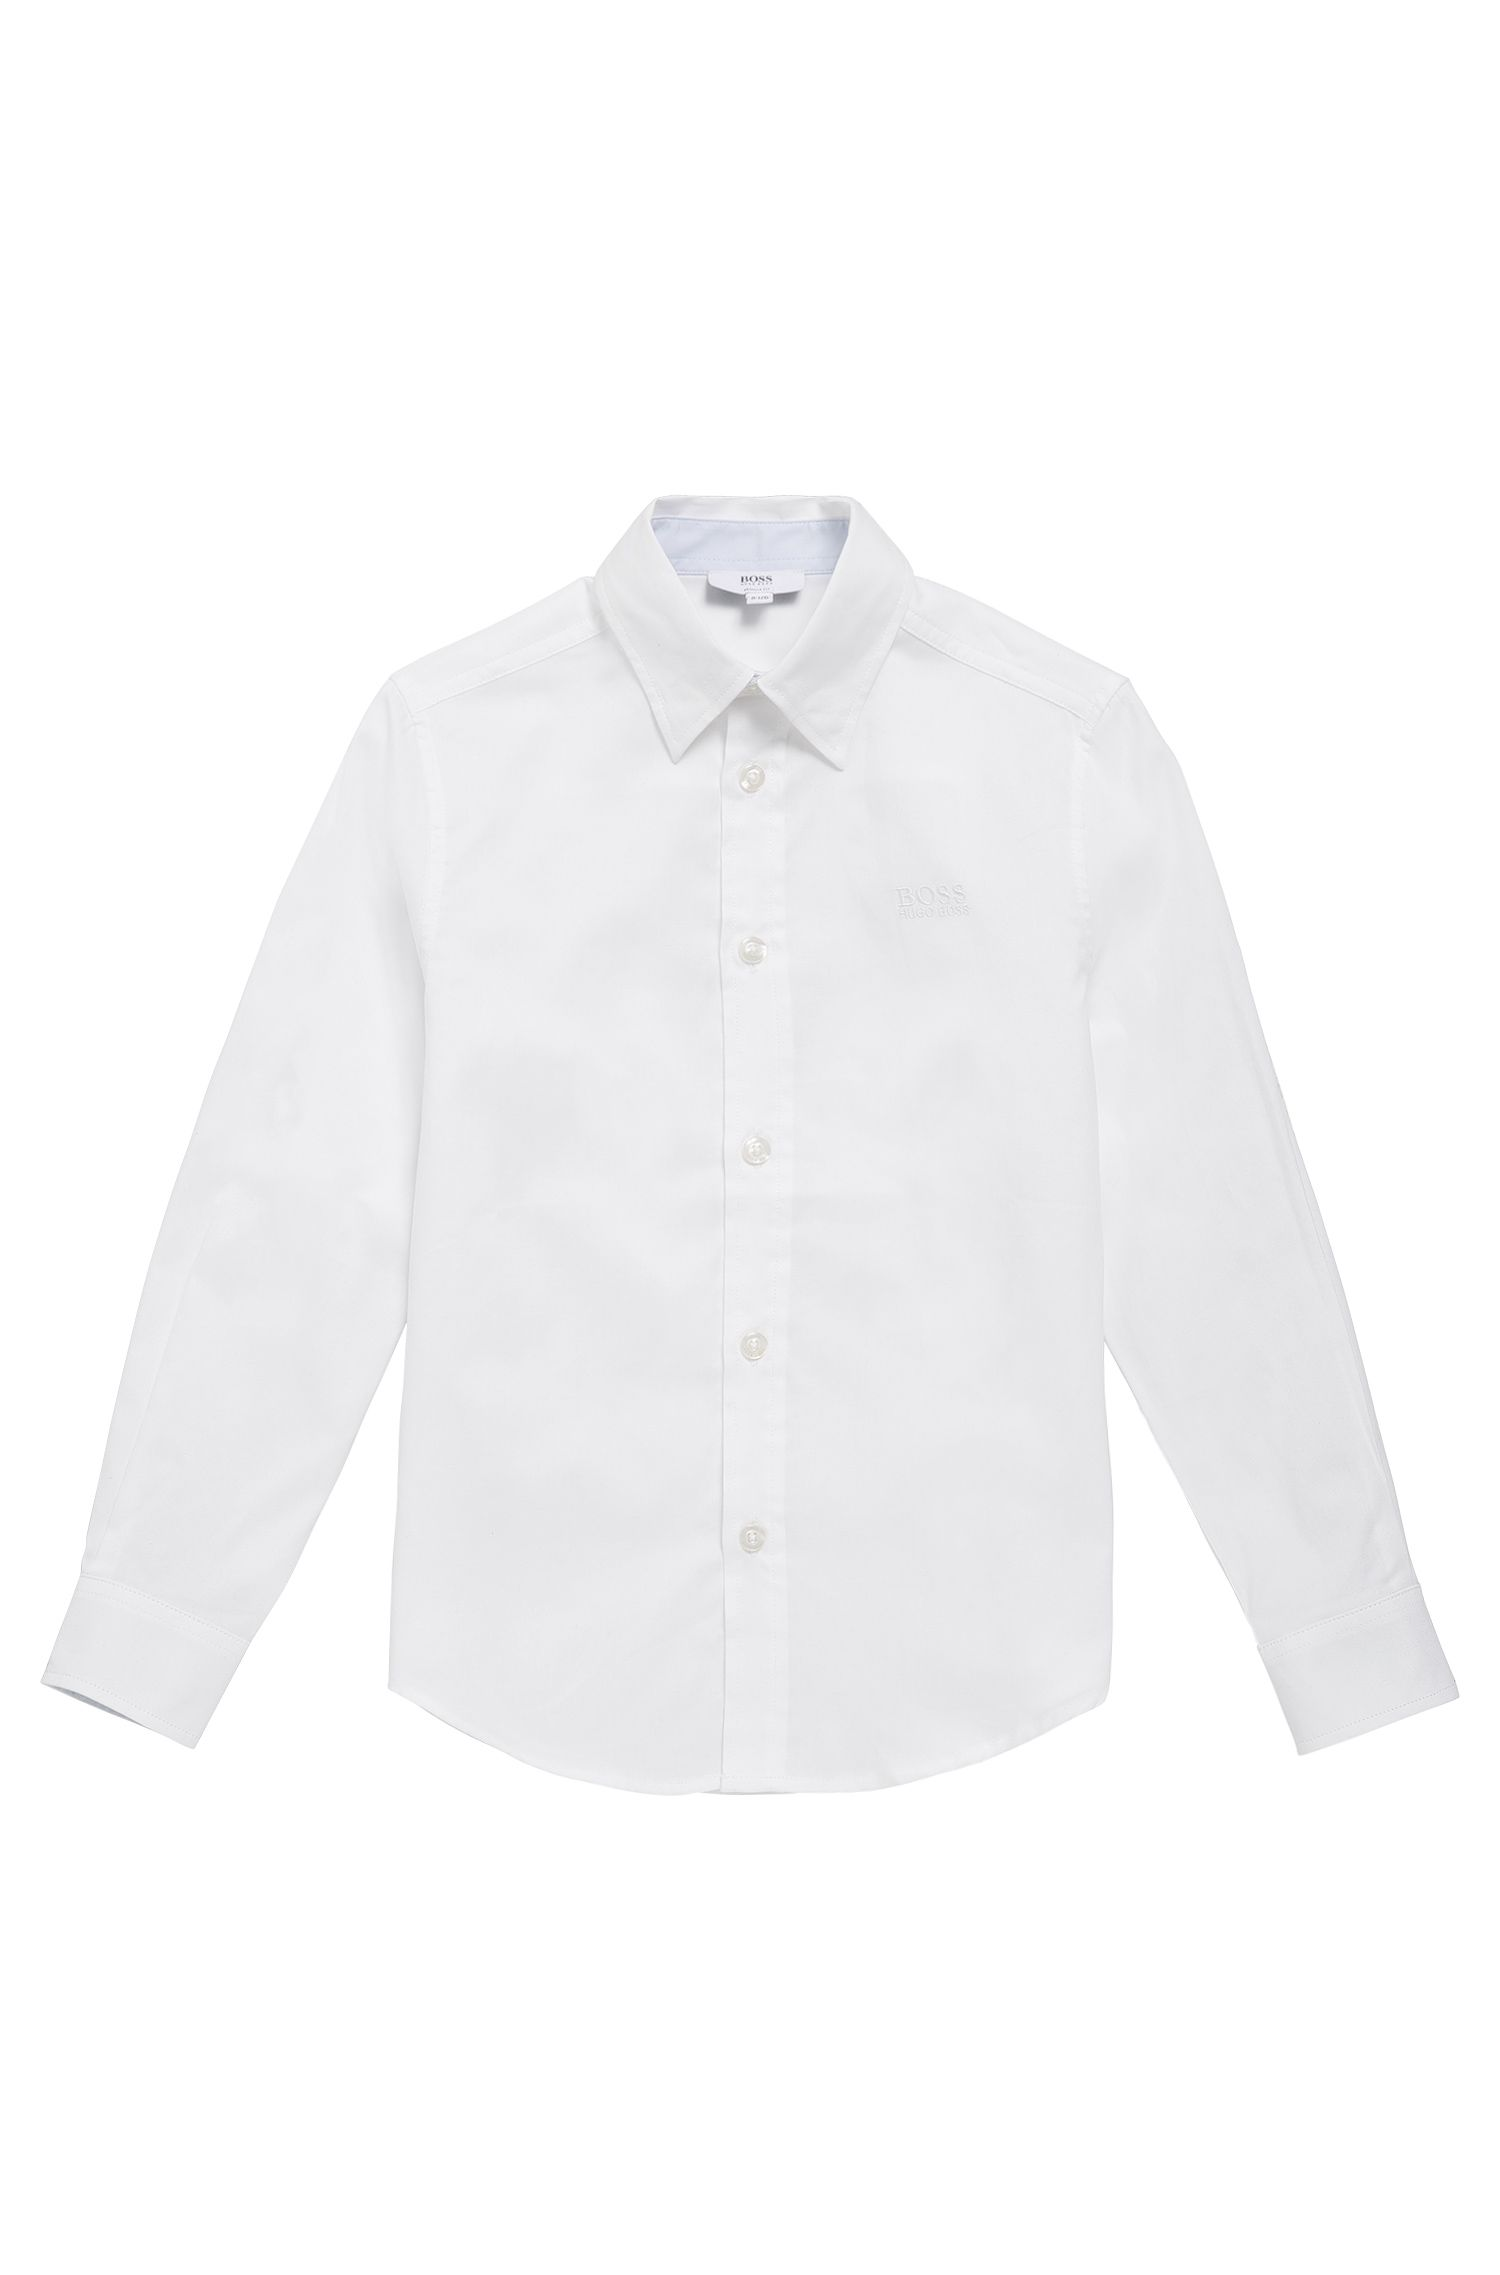 Kids' shirt in lightly textured cotton: 'J25977'